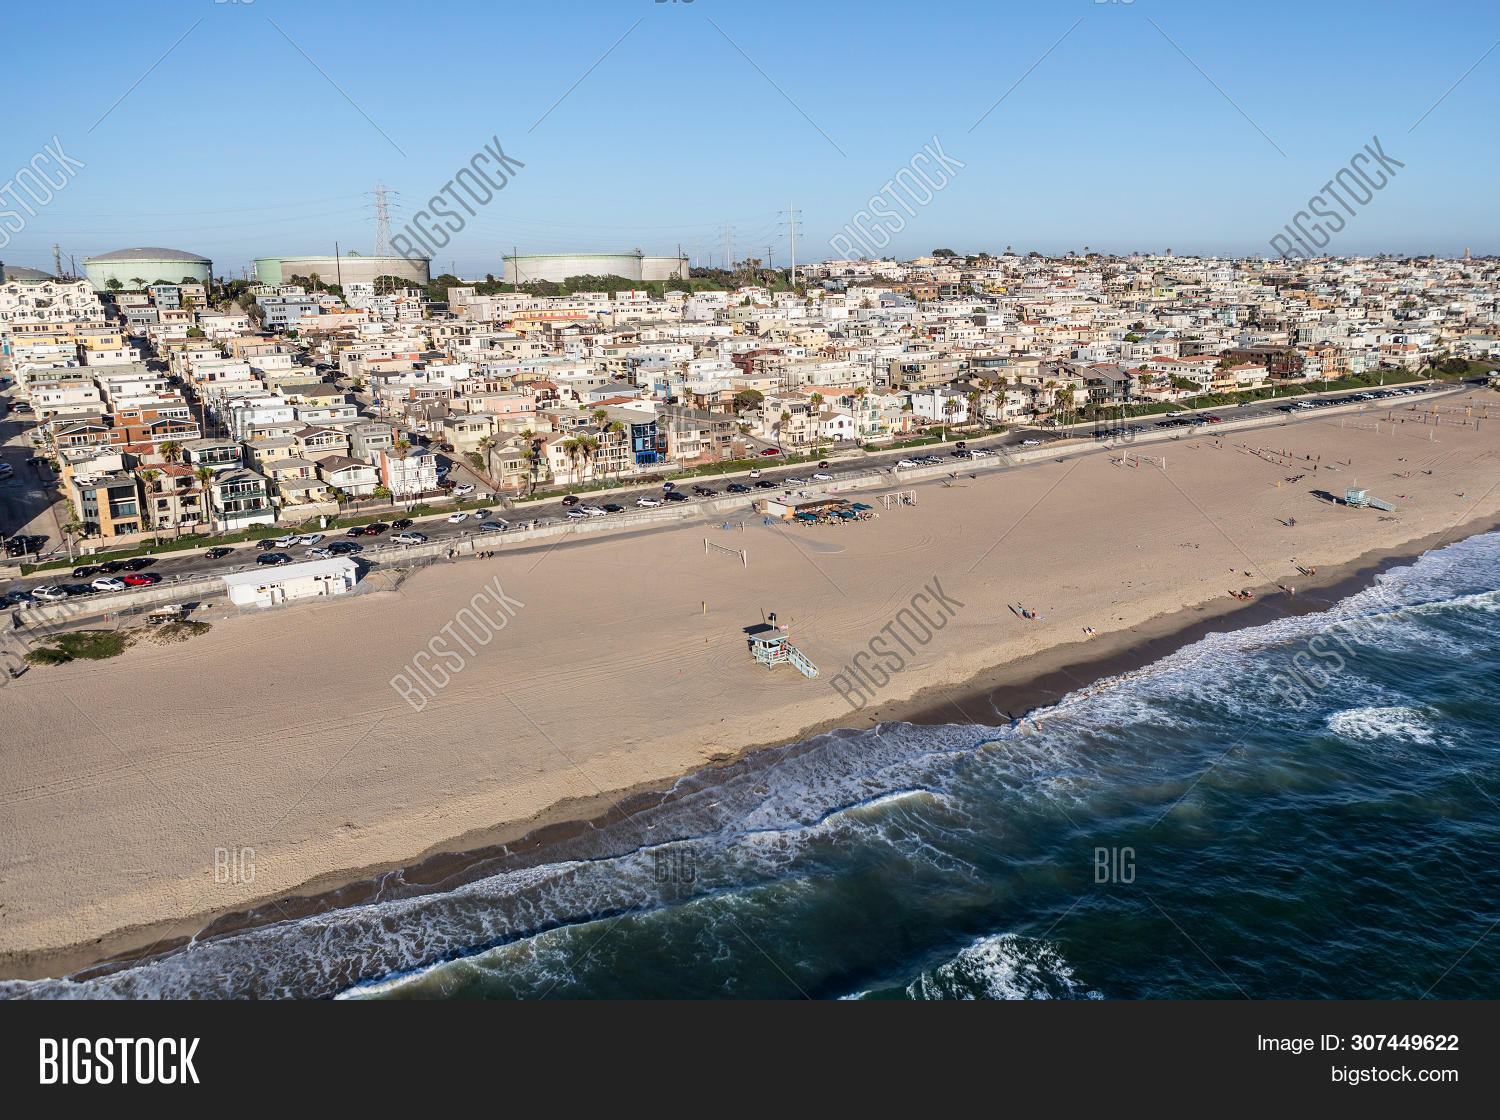 Afternoon Aerial View Image Photo Free Trial Bigstock